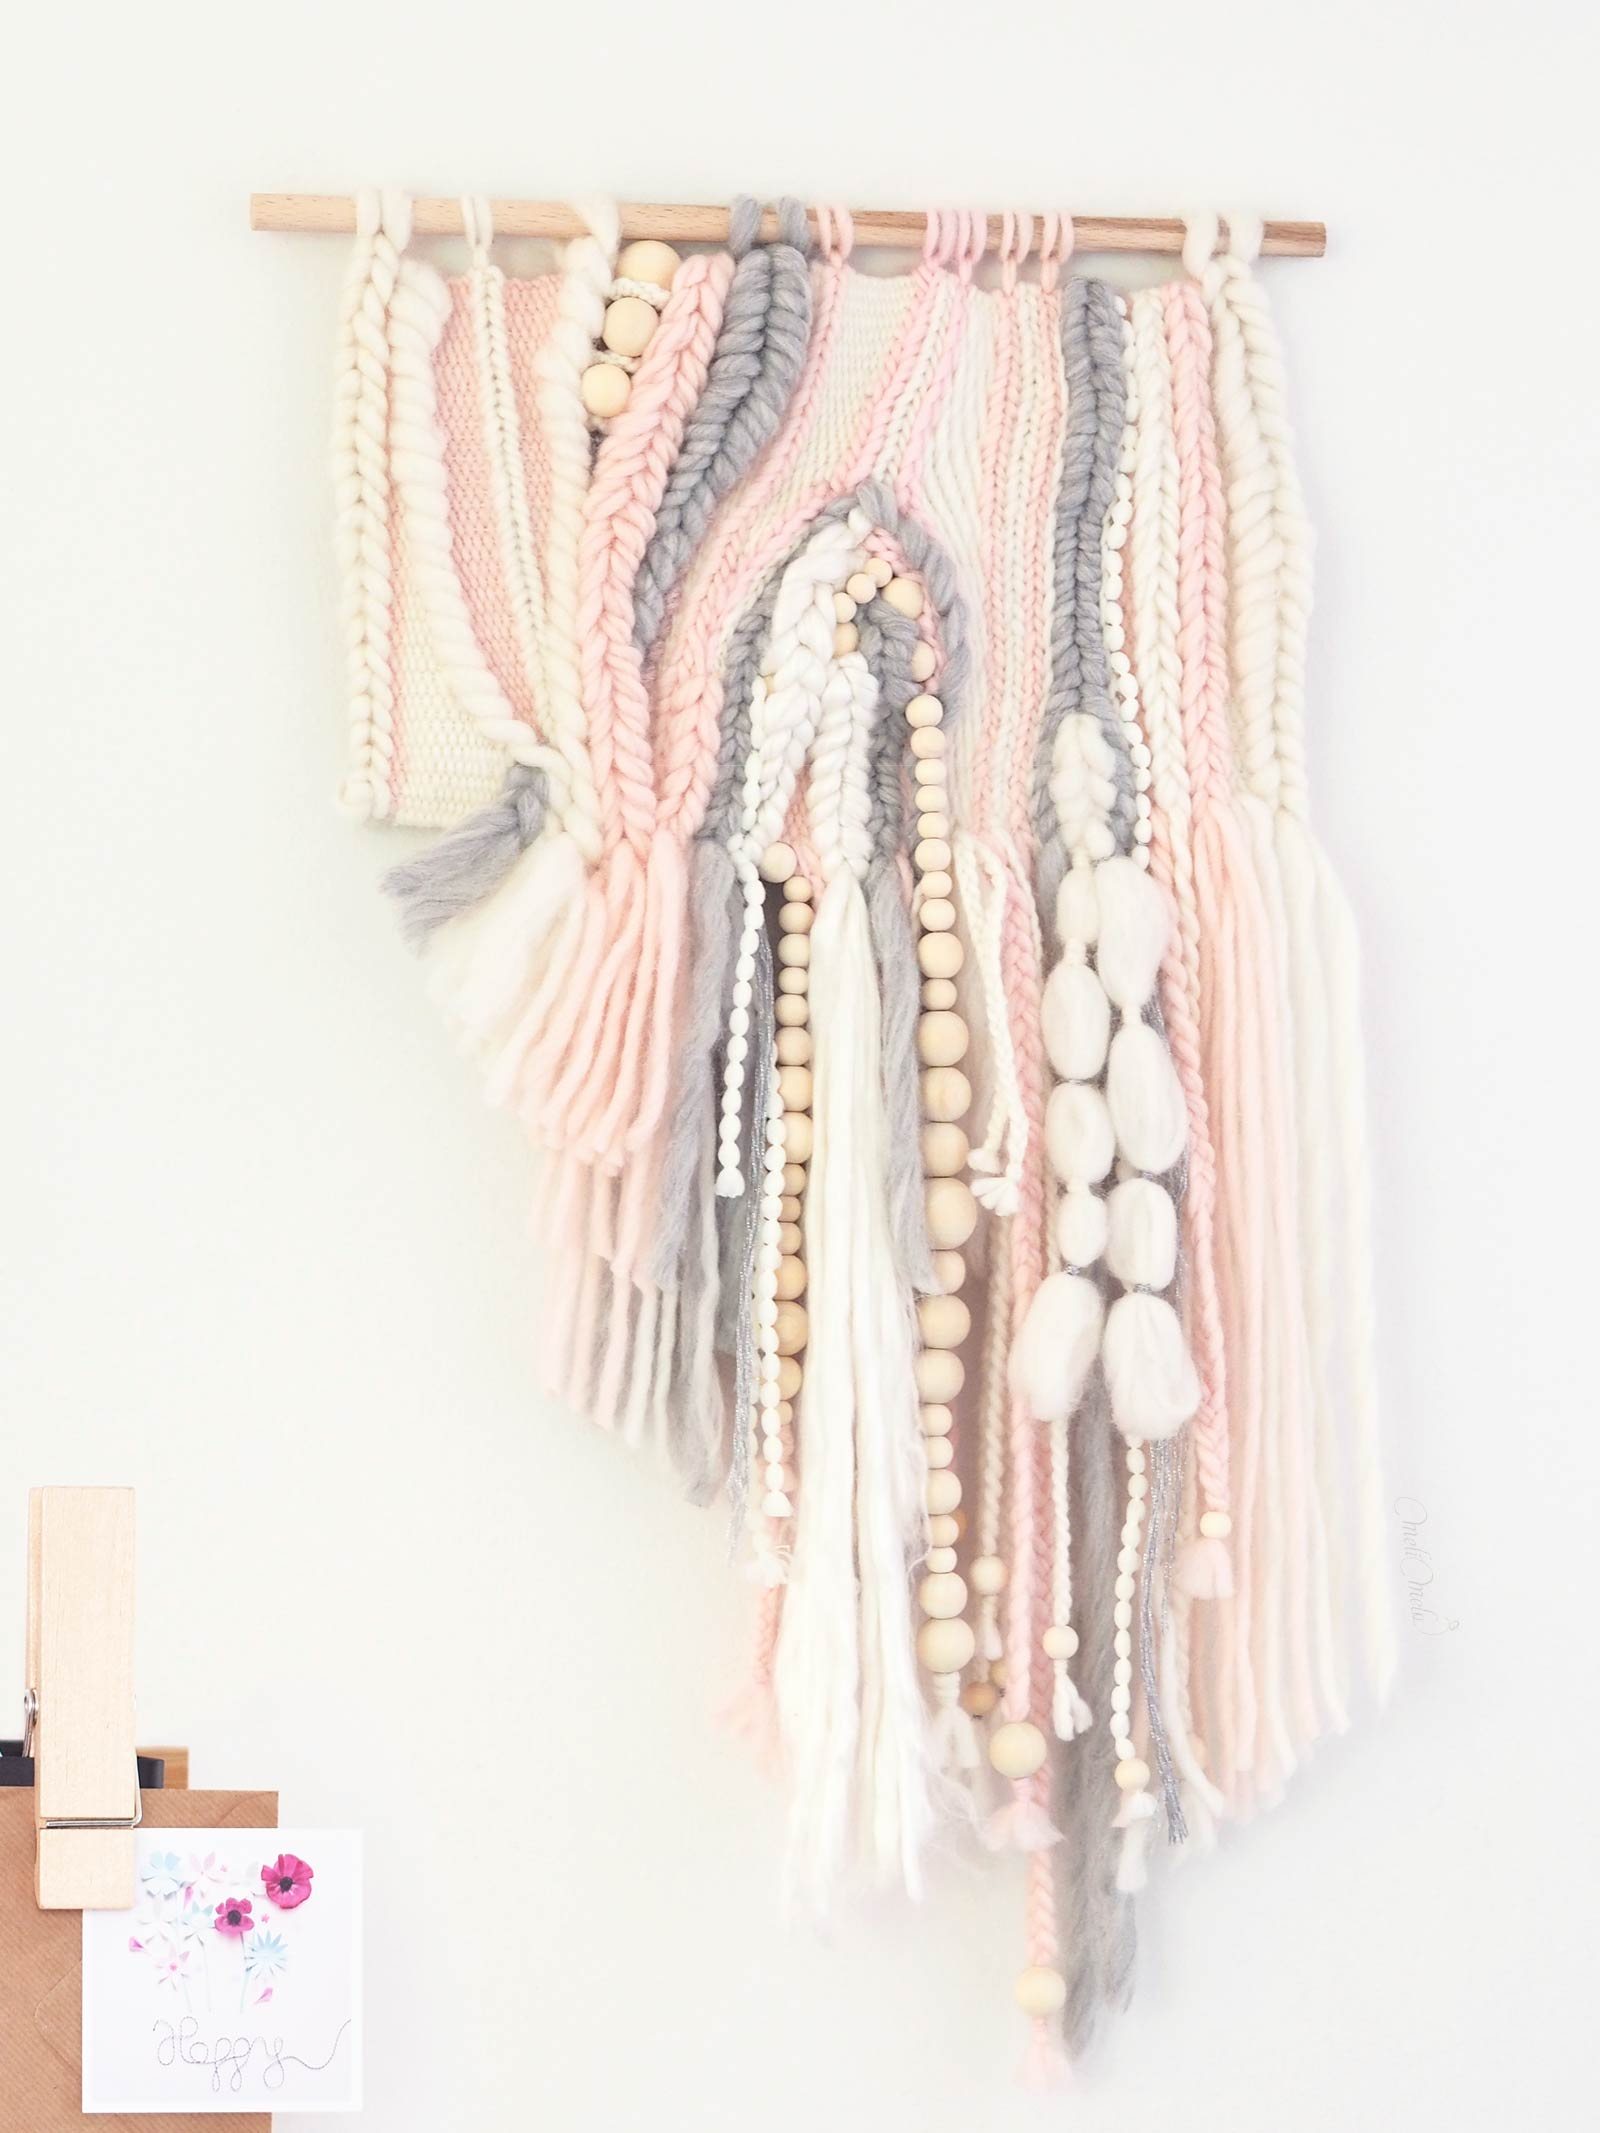 tissage laine sweetpoom creations decoratives mural homeware hand weaving laboutiquedemelimelo